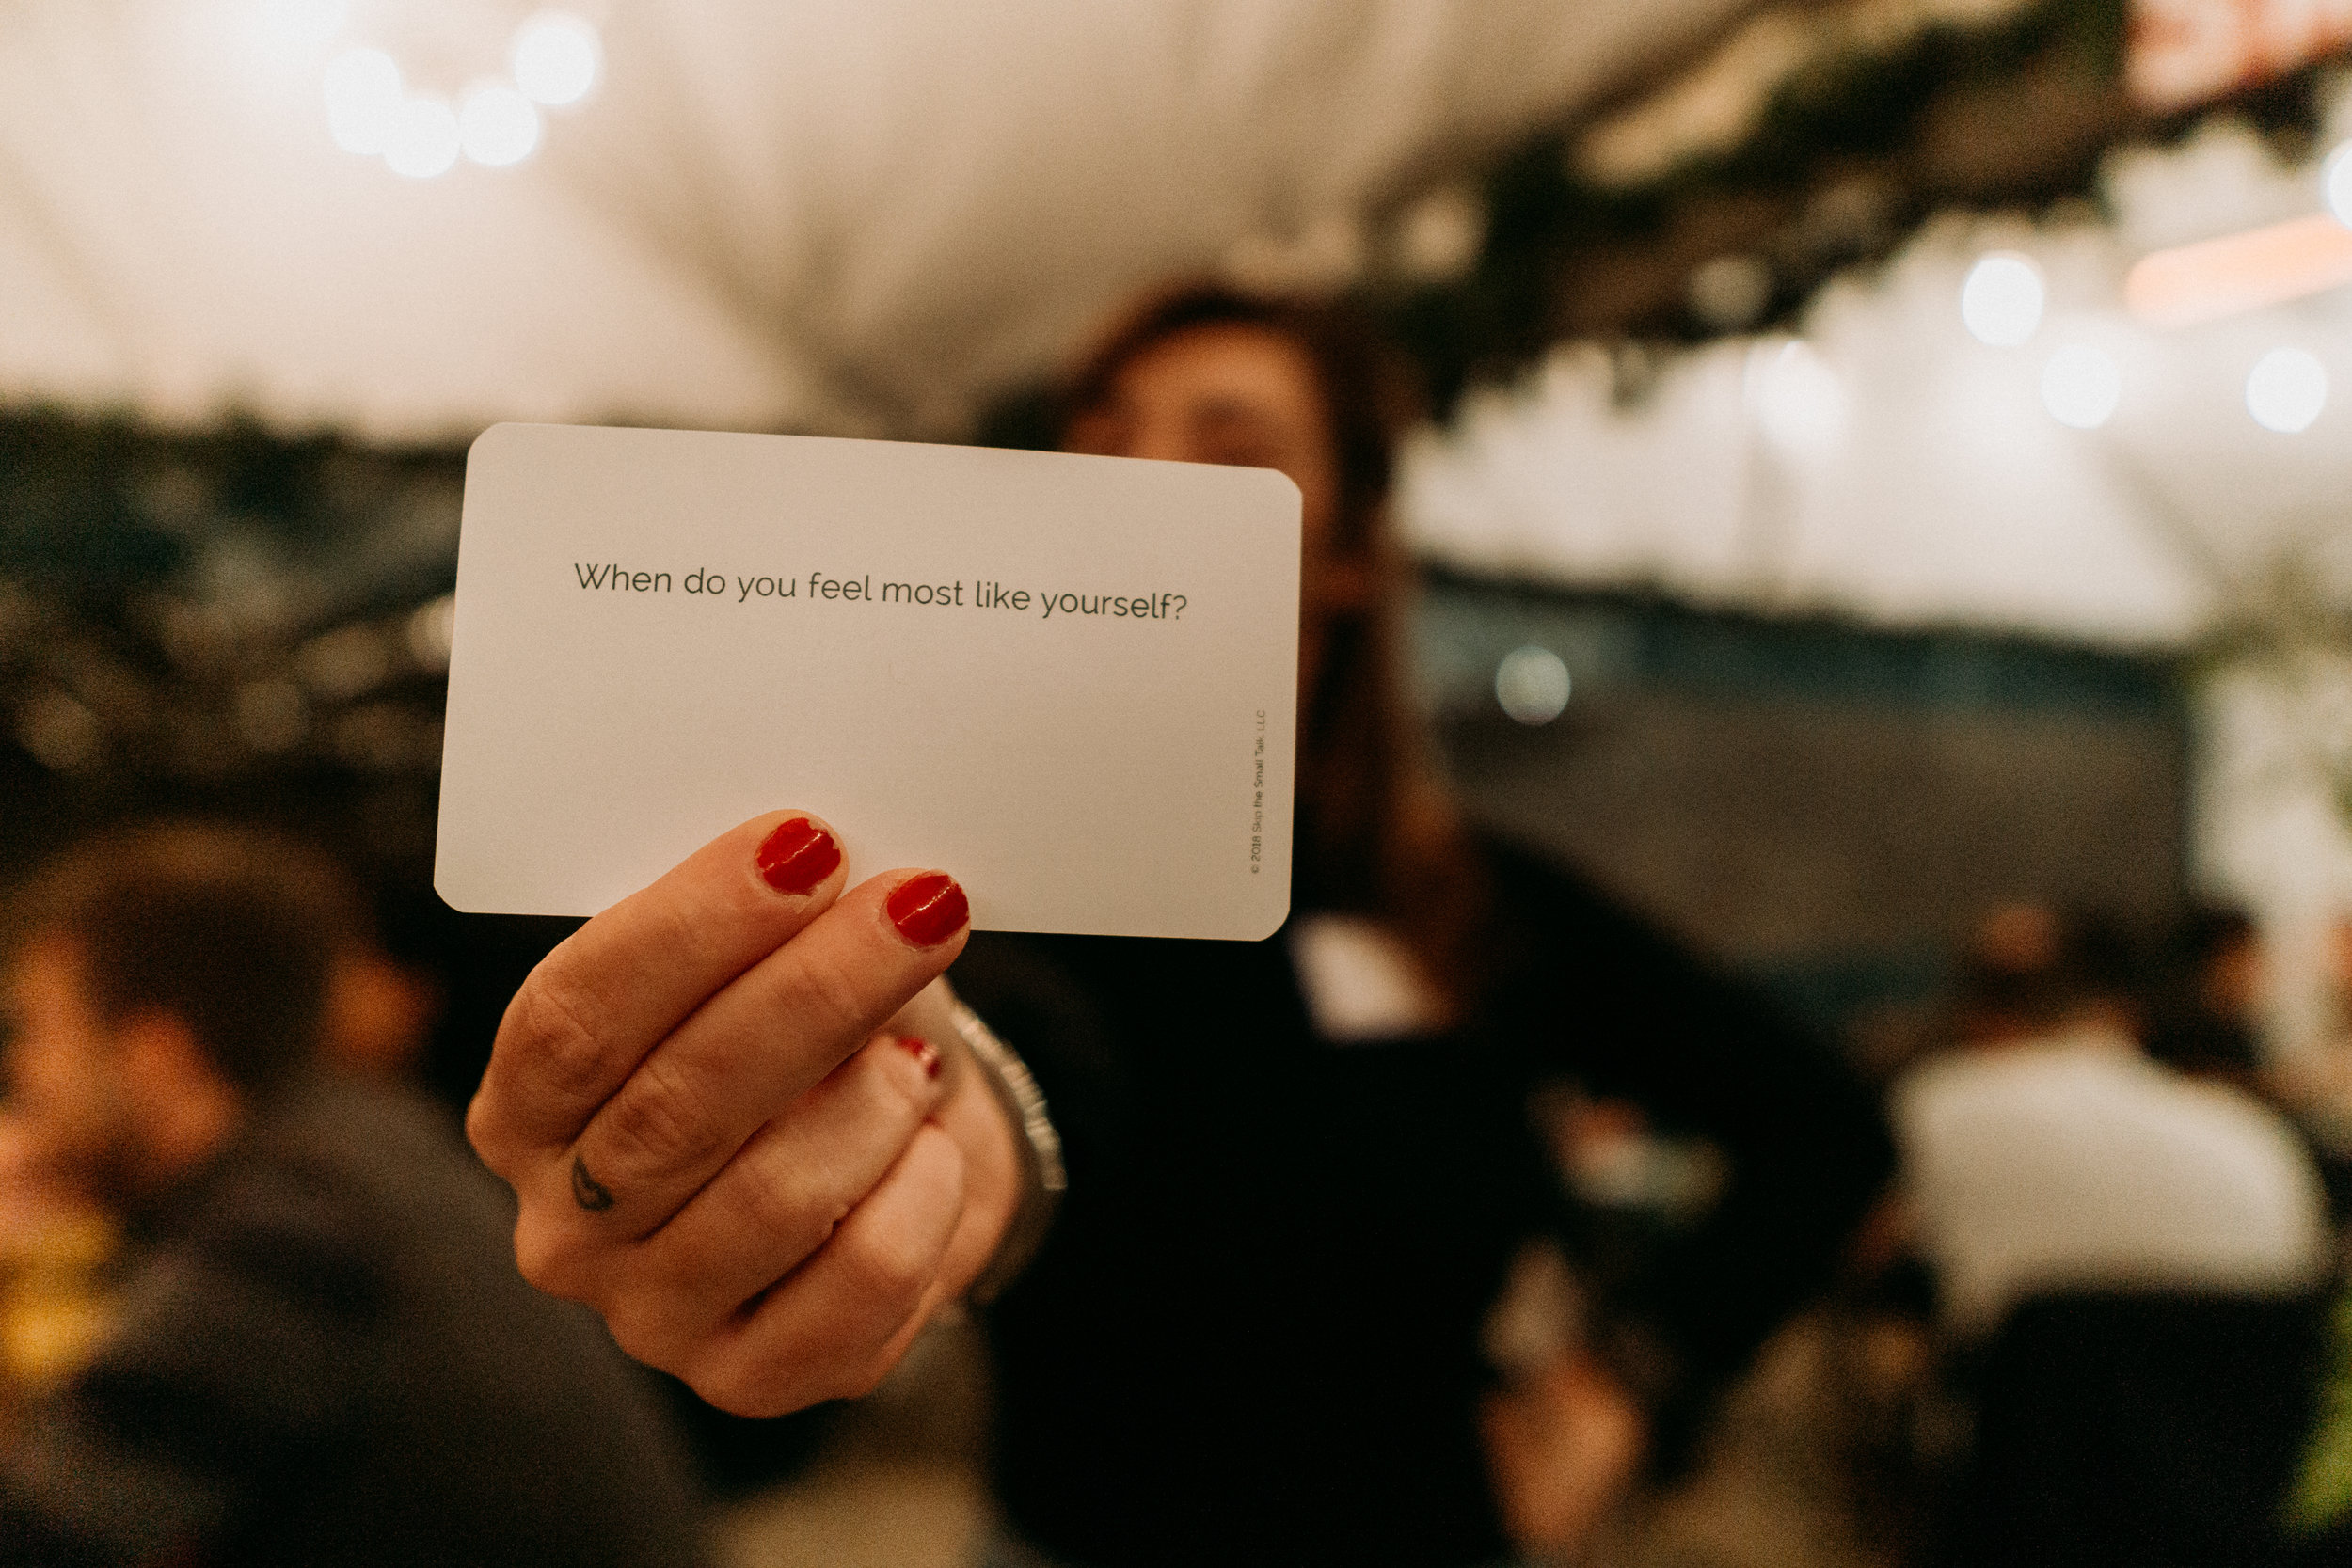 Question cards written by Ashley Kirsner give prompts for participants to delve into more personal questions they wouldn't typically ask someone they just met.